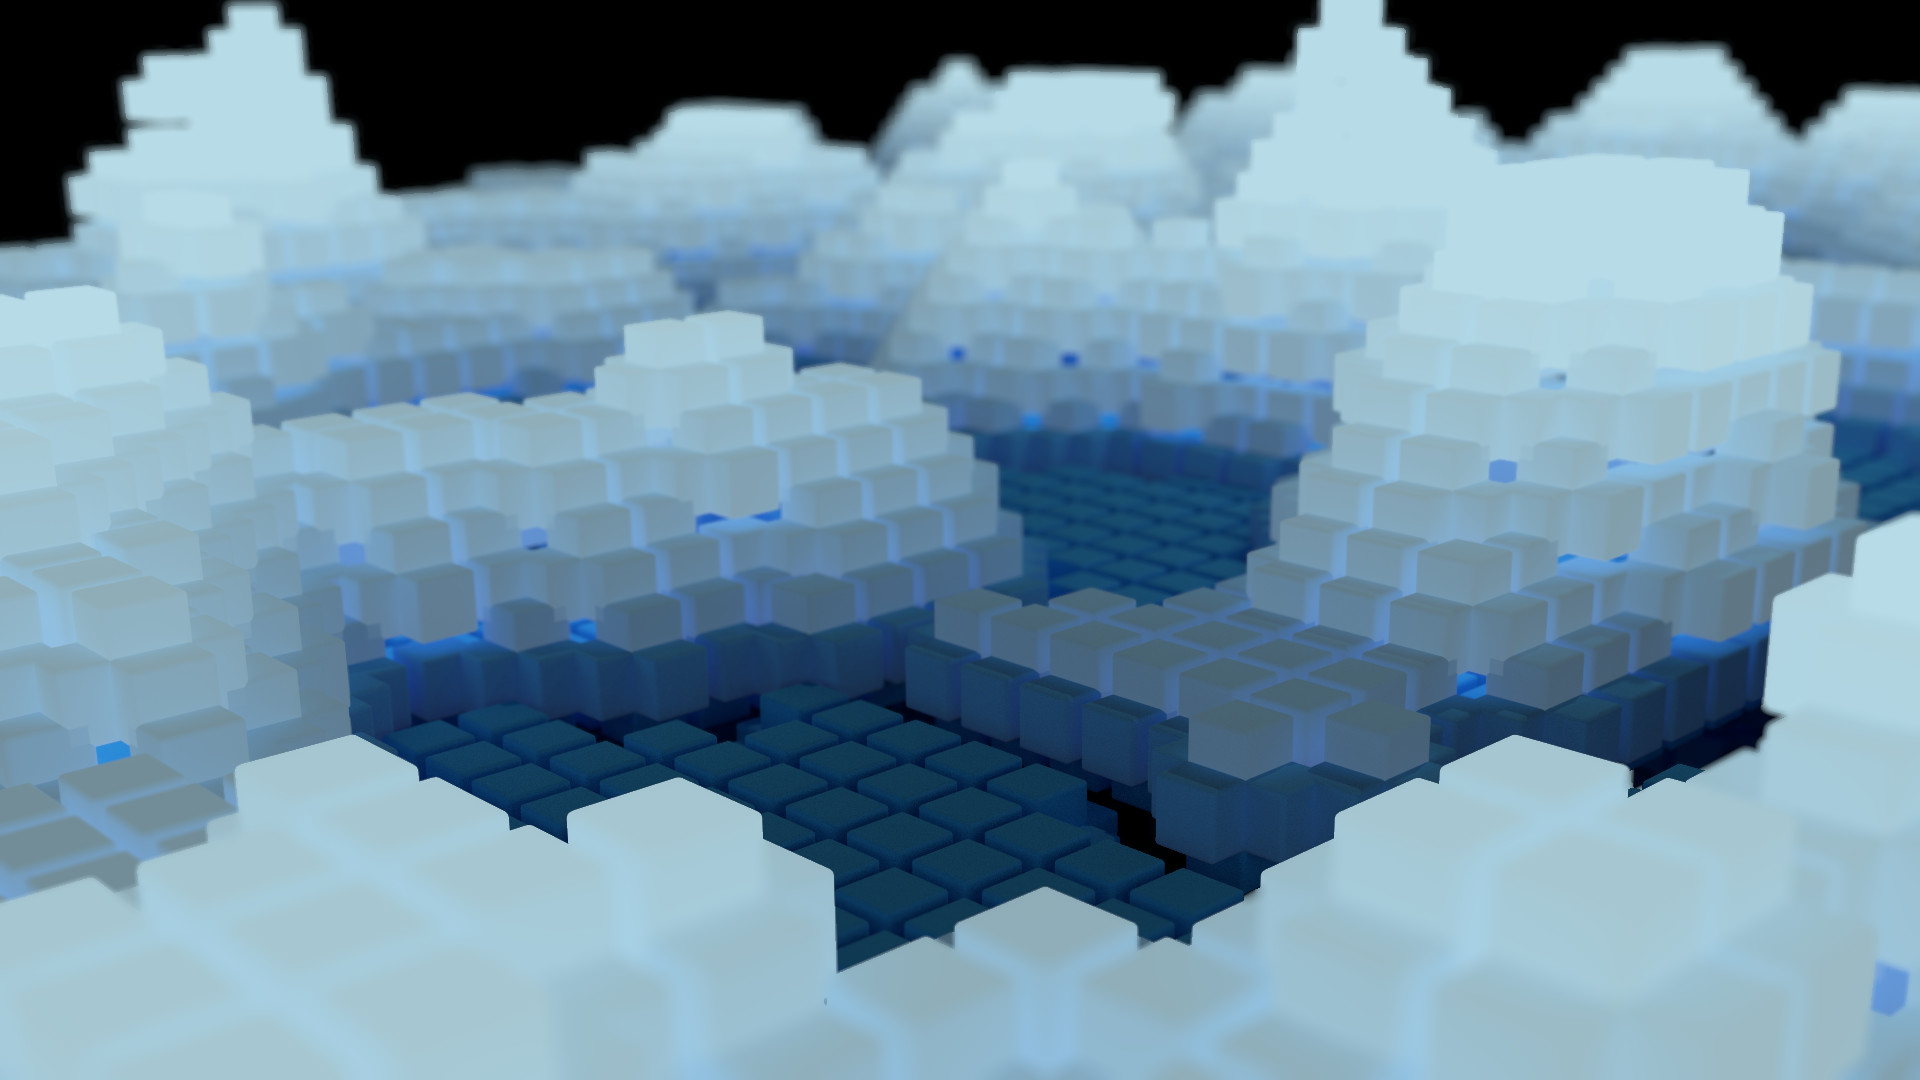 … version of the rendered image here. cubes wallpaper